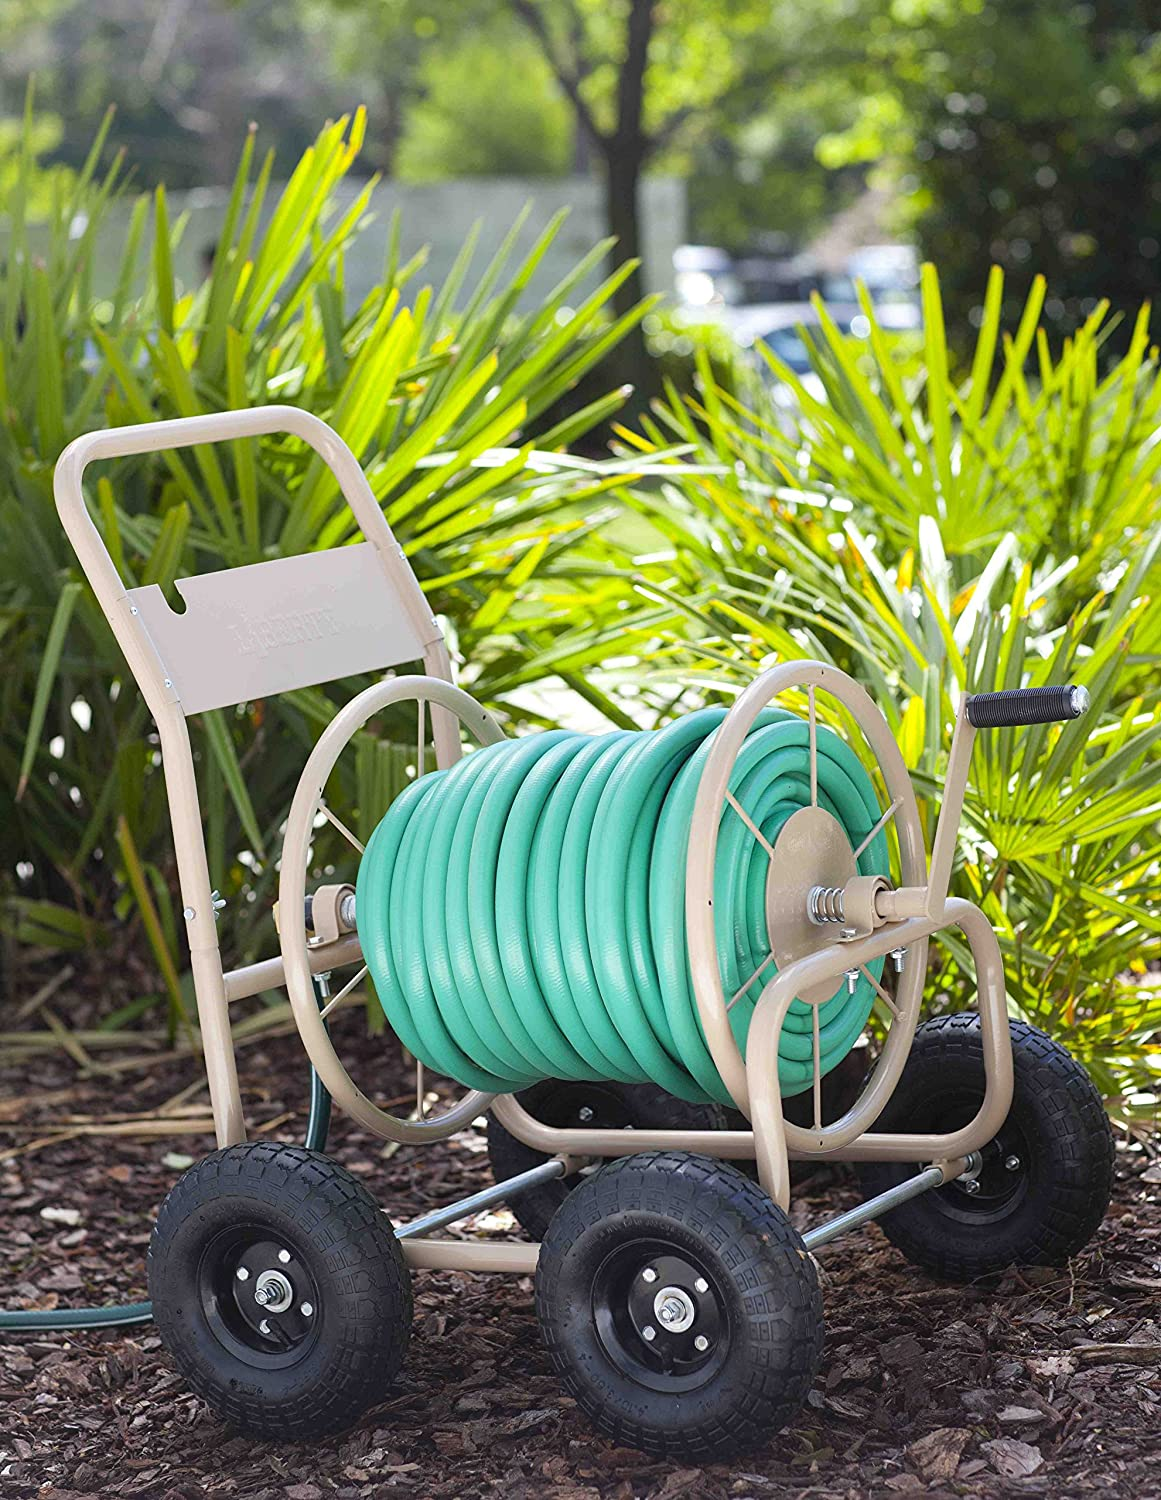 garden products. amazon.com : liberty garden products 870-m1-2 industrial 4-wheel hose reel cart, holds 300-feet of 5/8-inch - tan cart with wheels